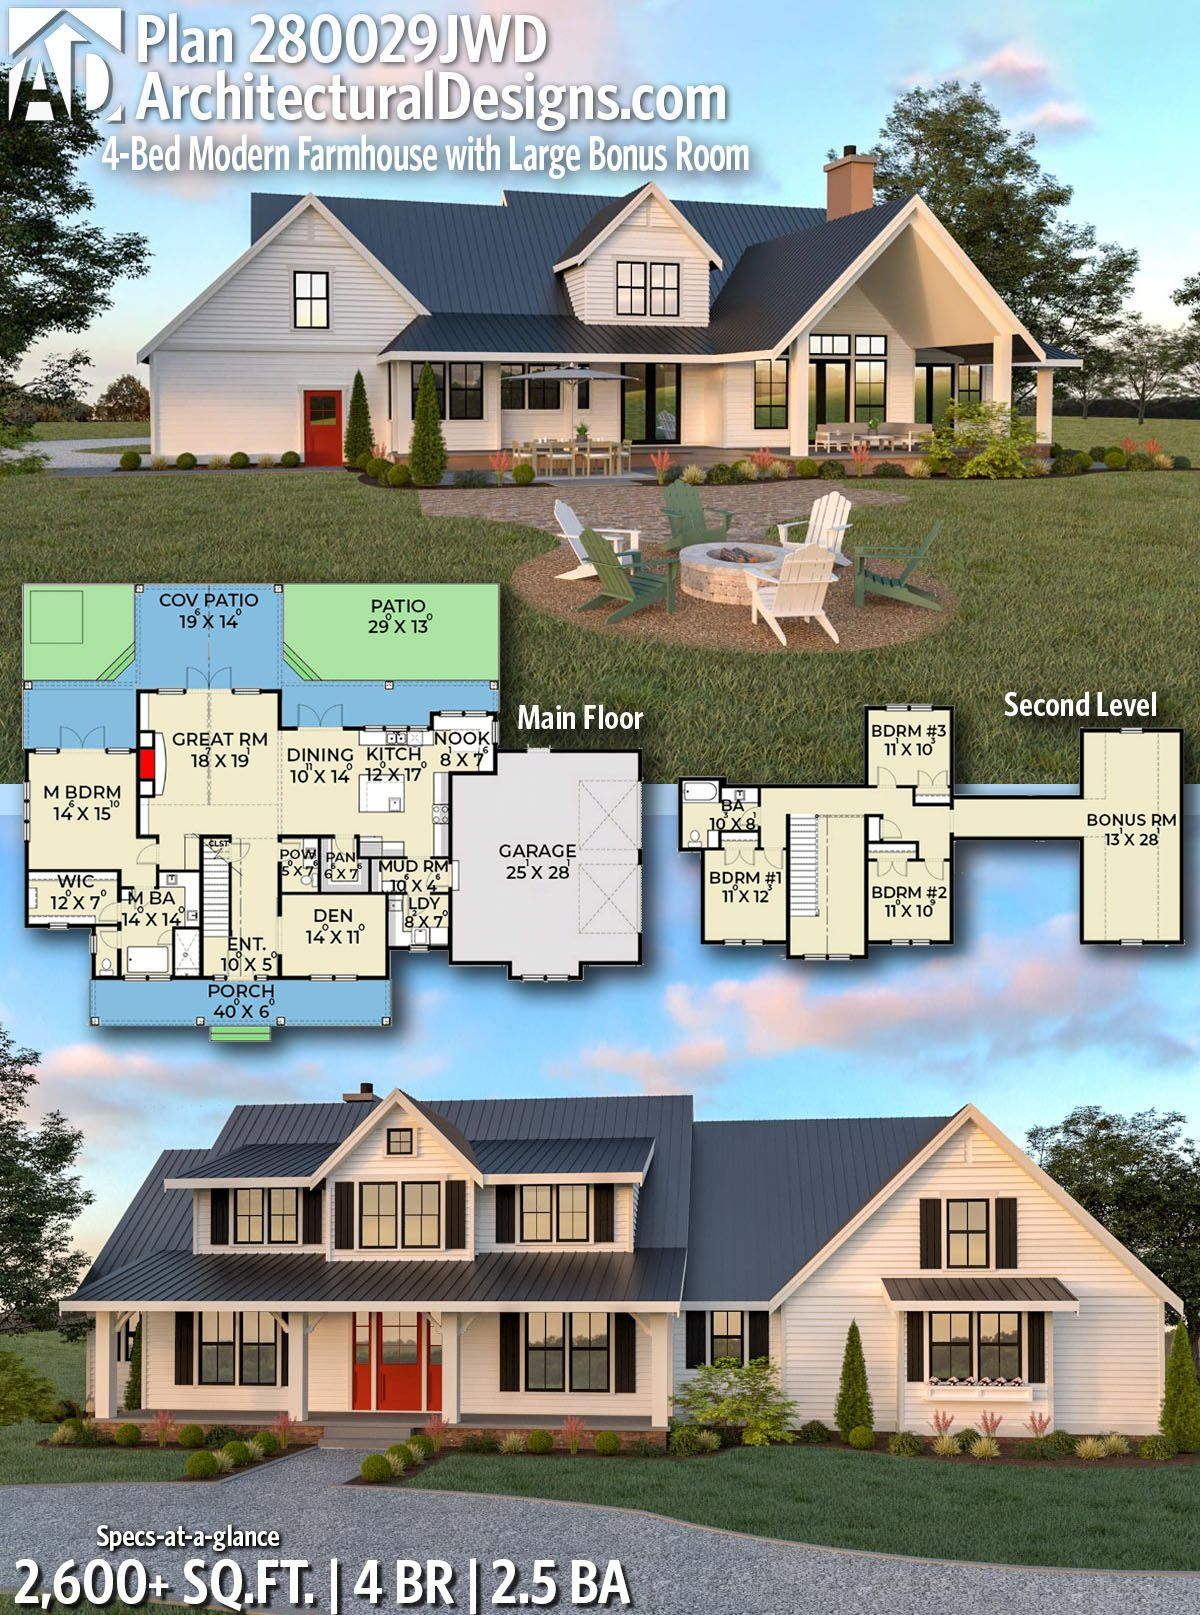 Plan 280029jwd 4 Bed Modern Farmhouse With Large Bonus Room In 2020 Dream House Plans Farmhouse Plans New House Plans